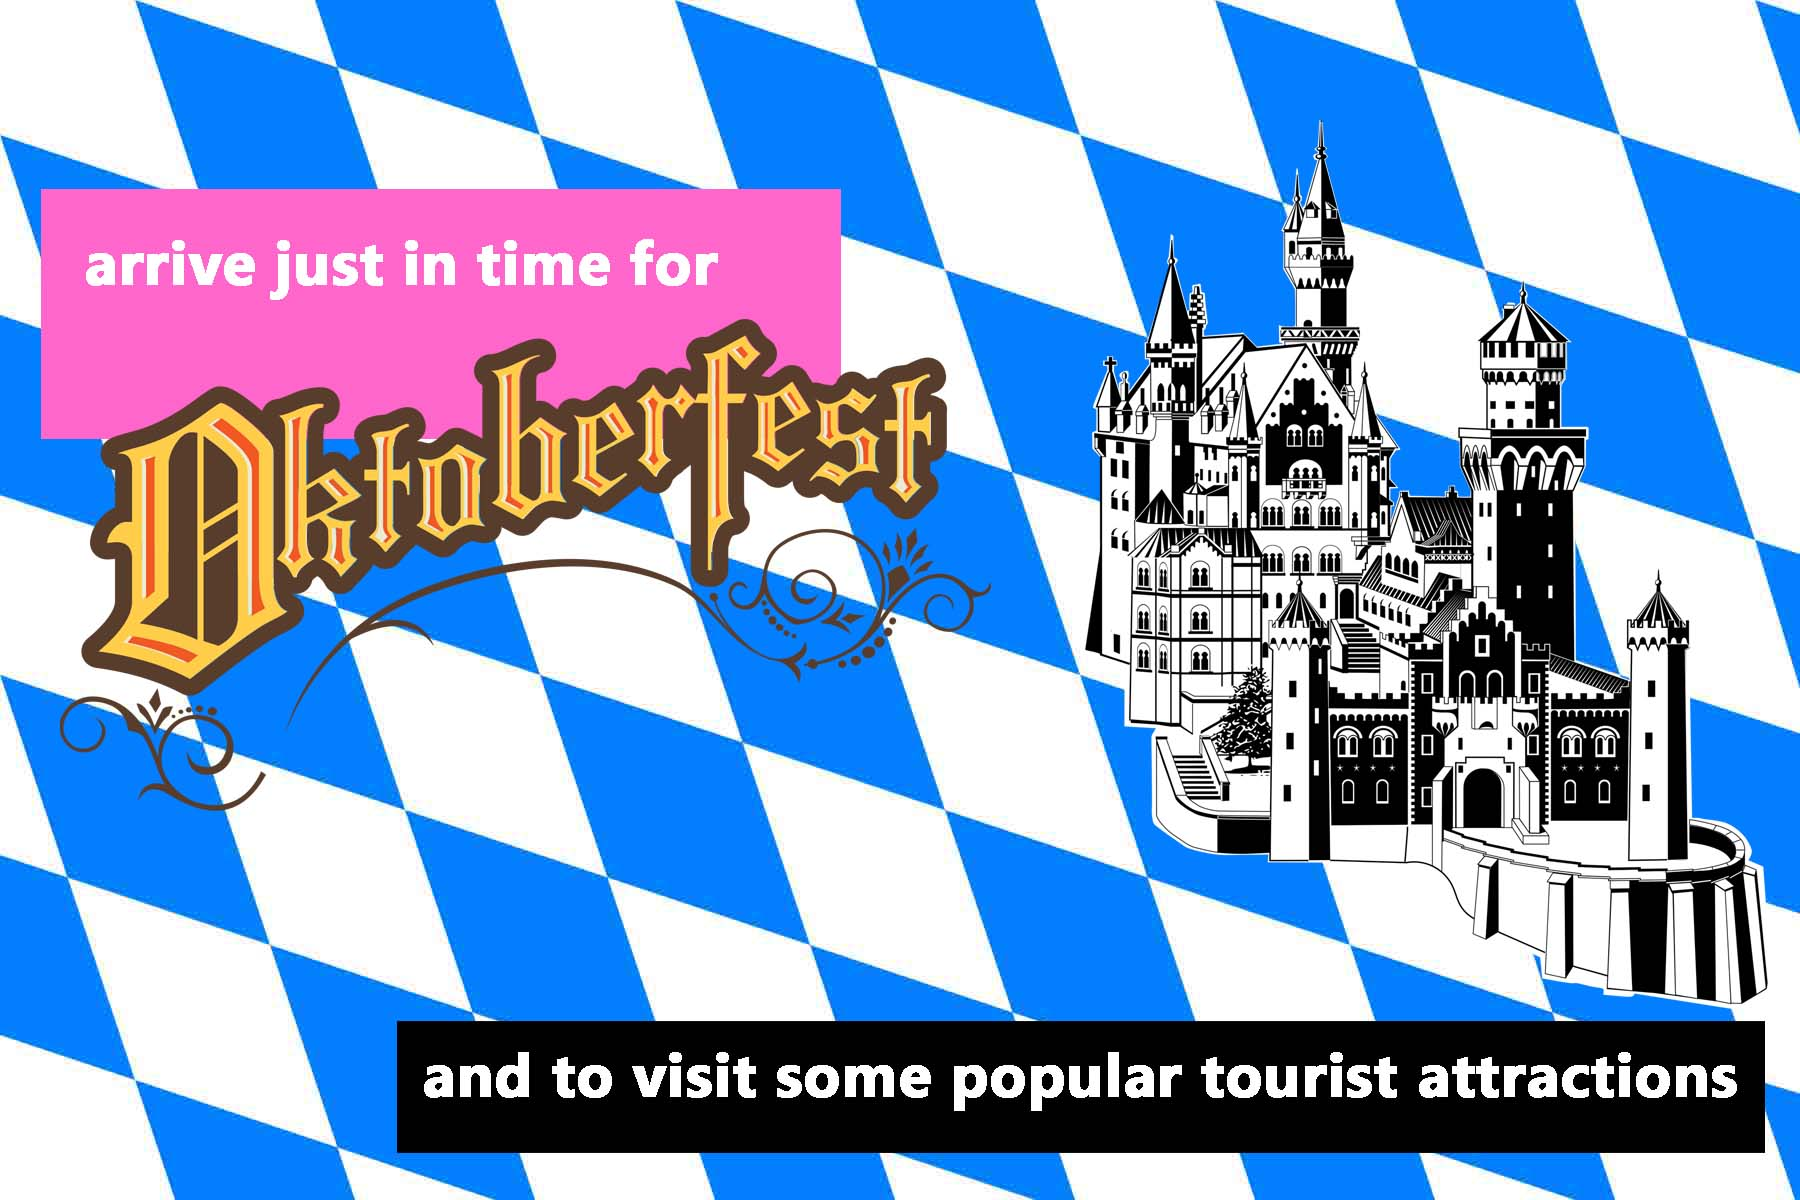 arrive in time for Oktoberfest